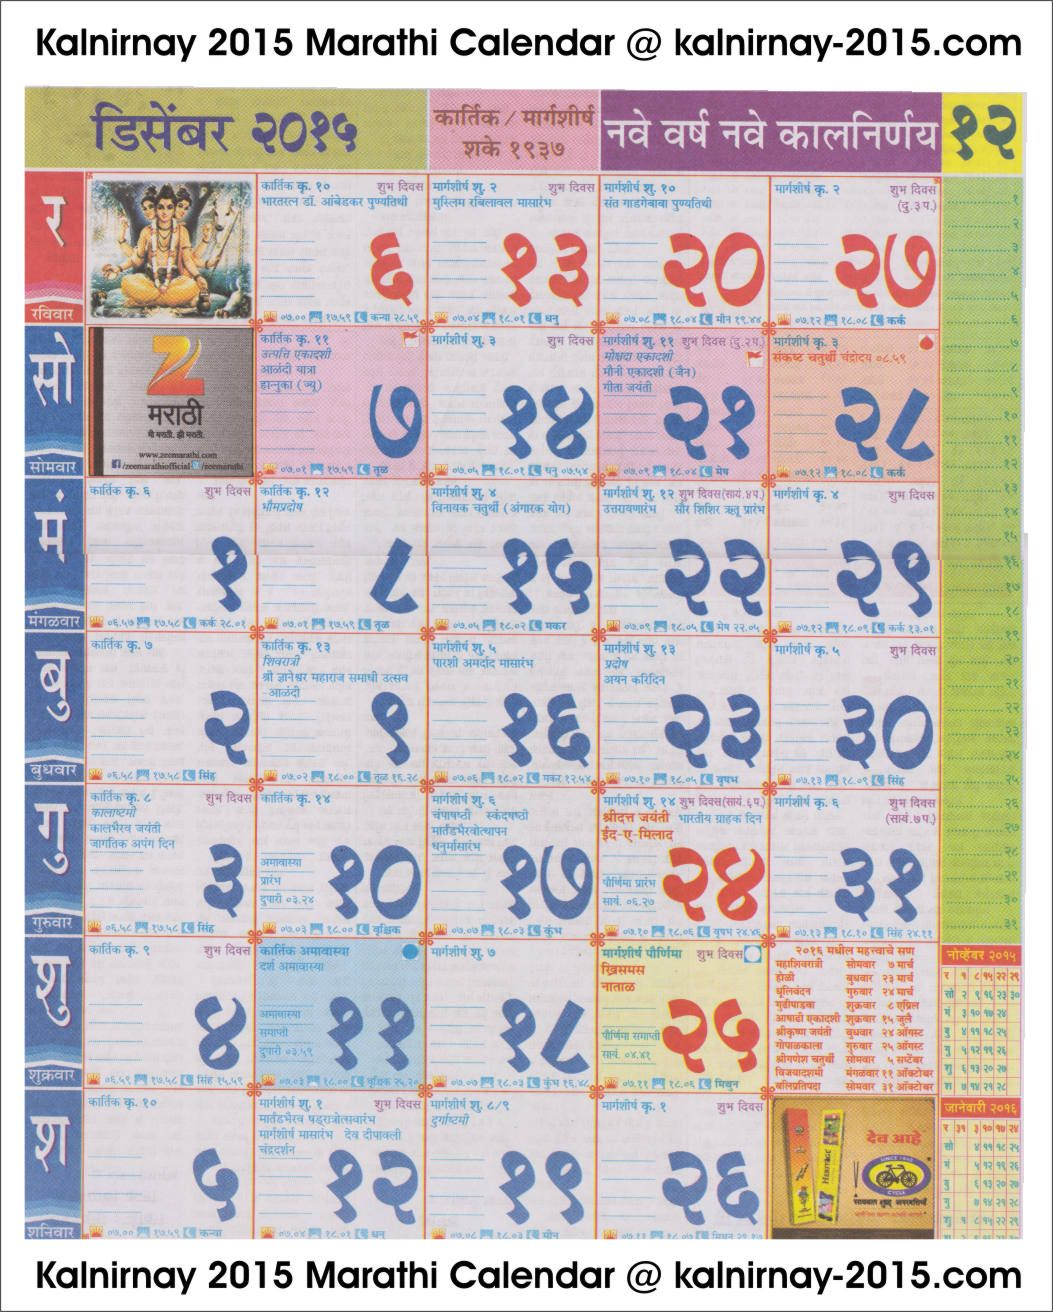 December 2015 Marathi Kalnirnay Calendar With Images Calendar